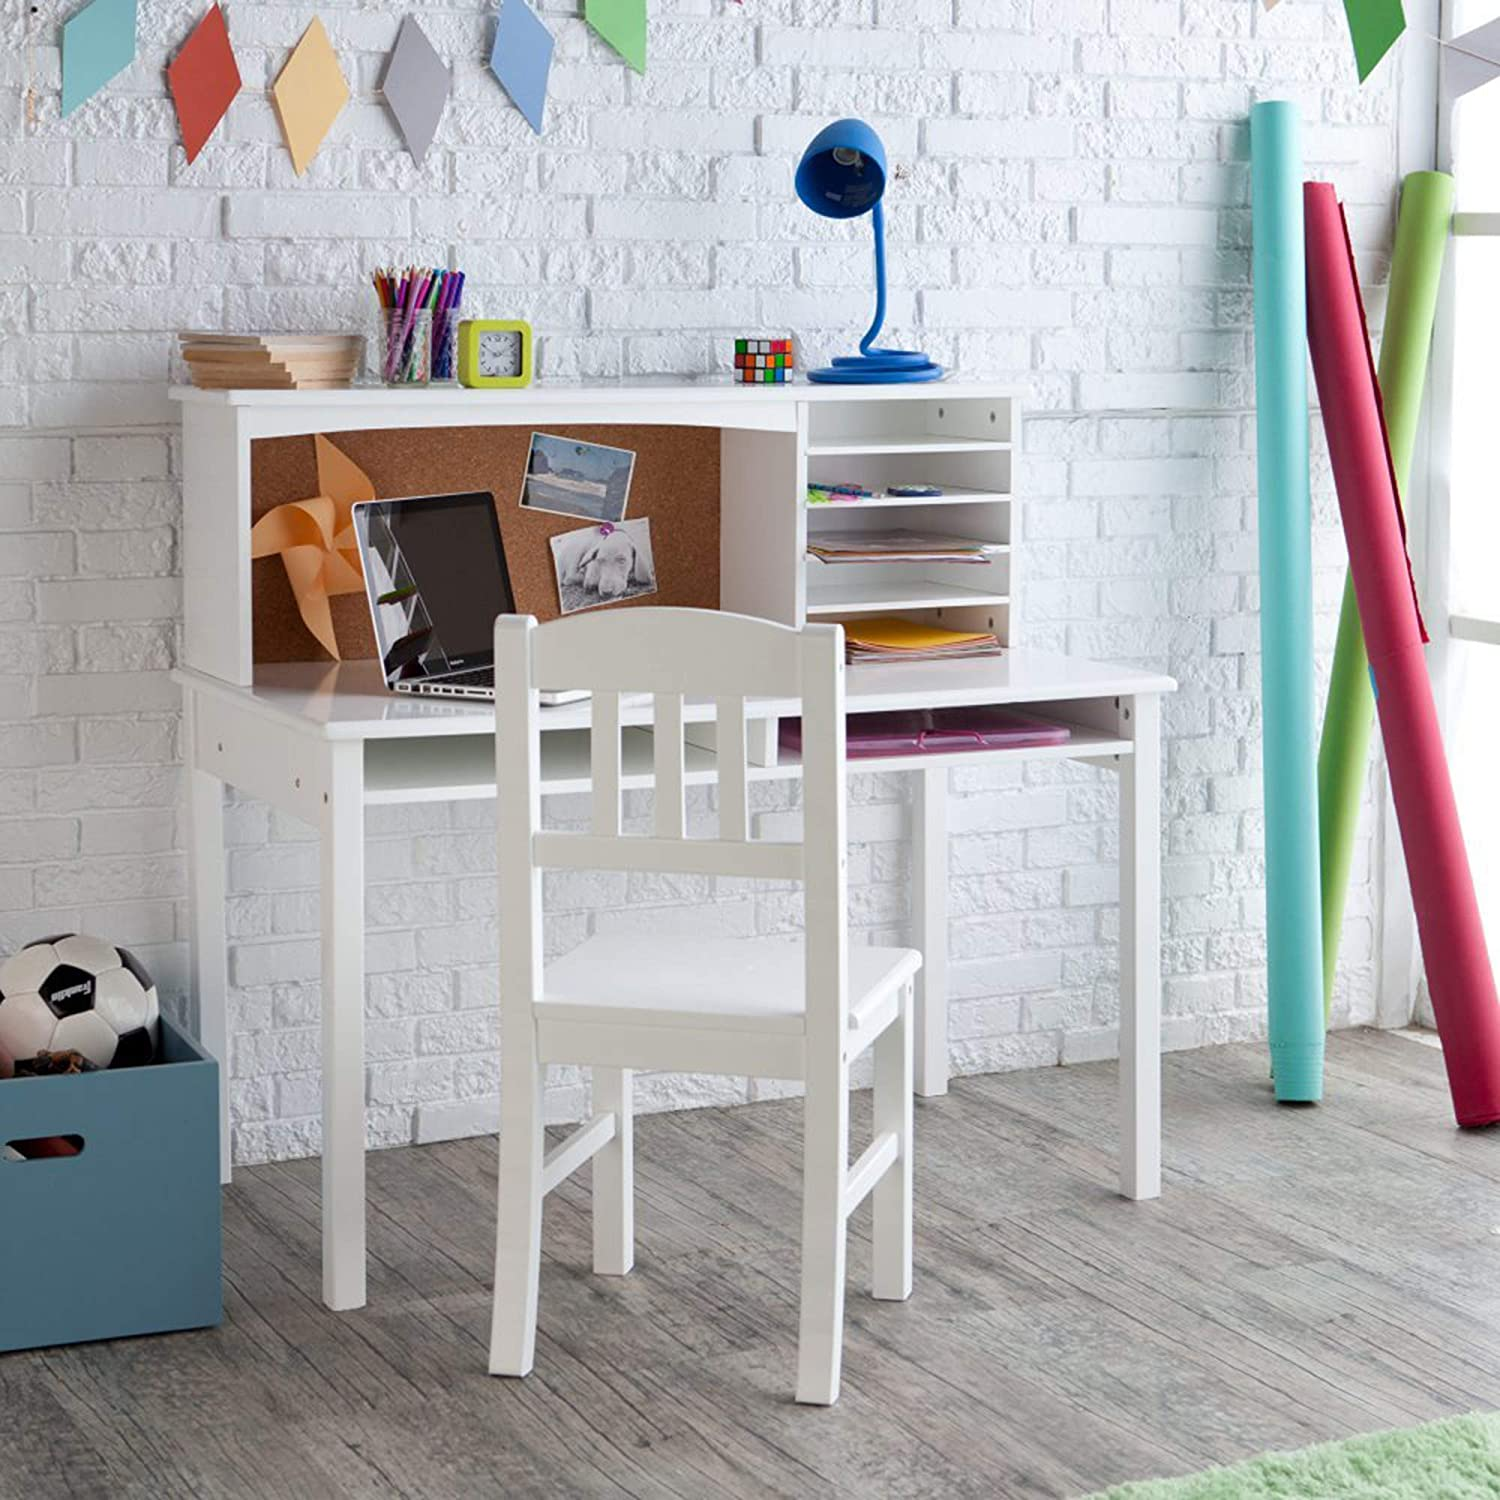 Phenomenal Guidecraft Childrens Media Desk And Chair Set White Student Study Computer Workstation Wooden Kids Bedroom Furniture Gmtry Best Dining Table And Chair Ideas Images Gmtryco